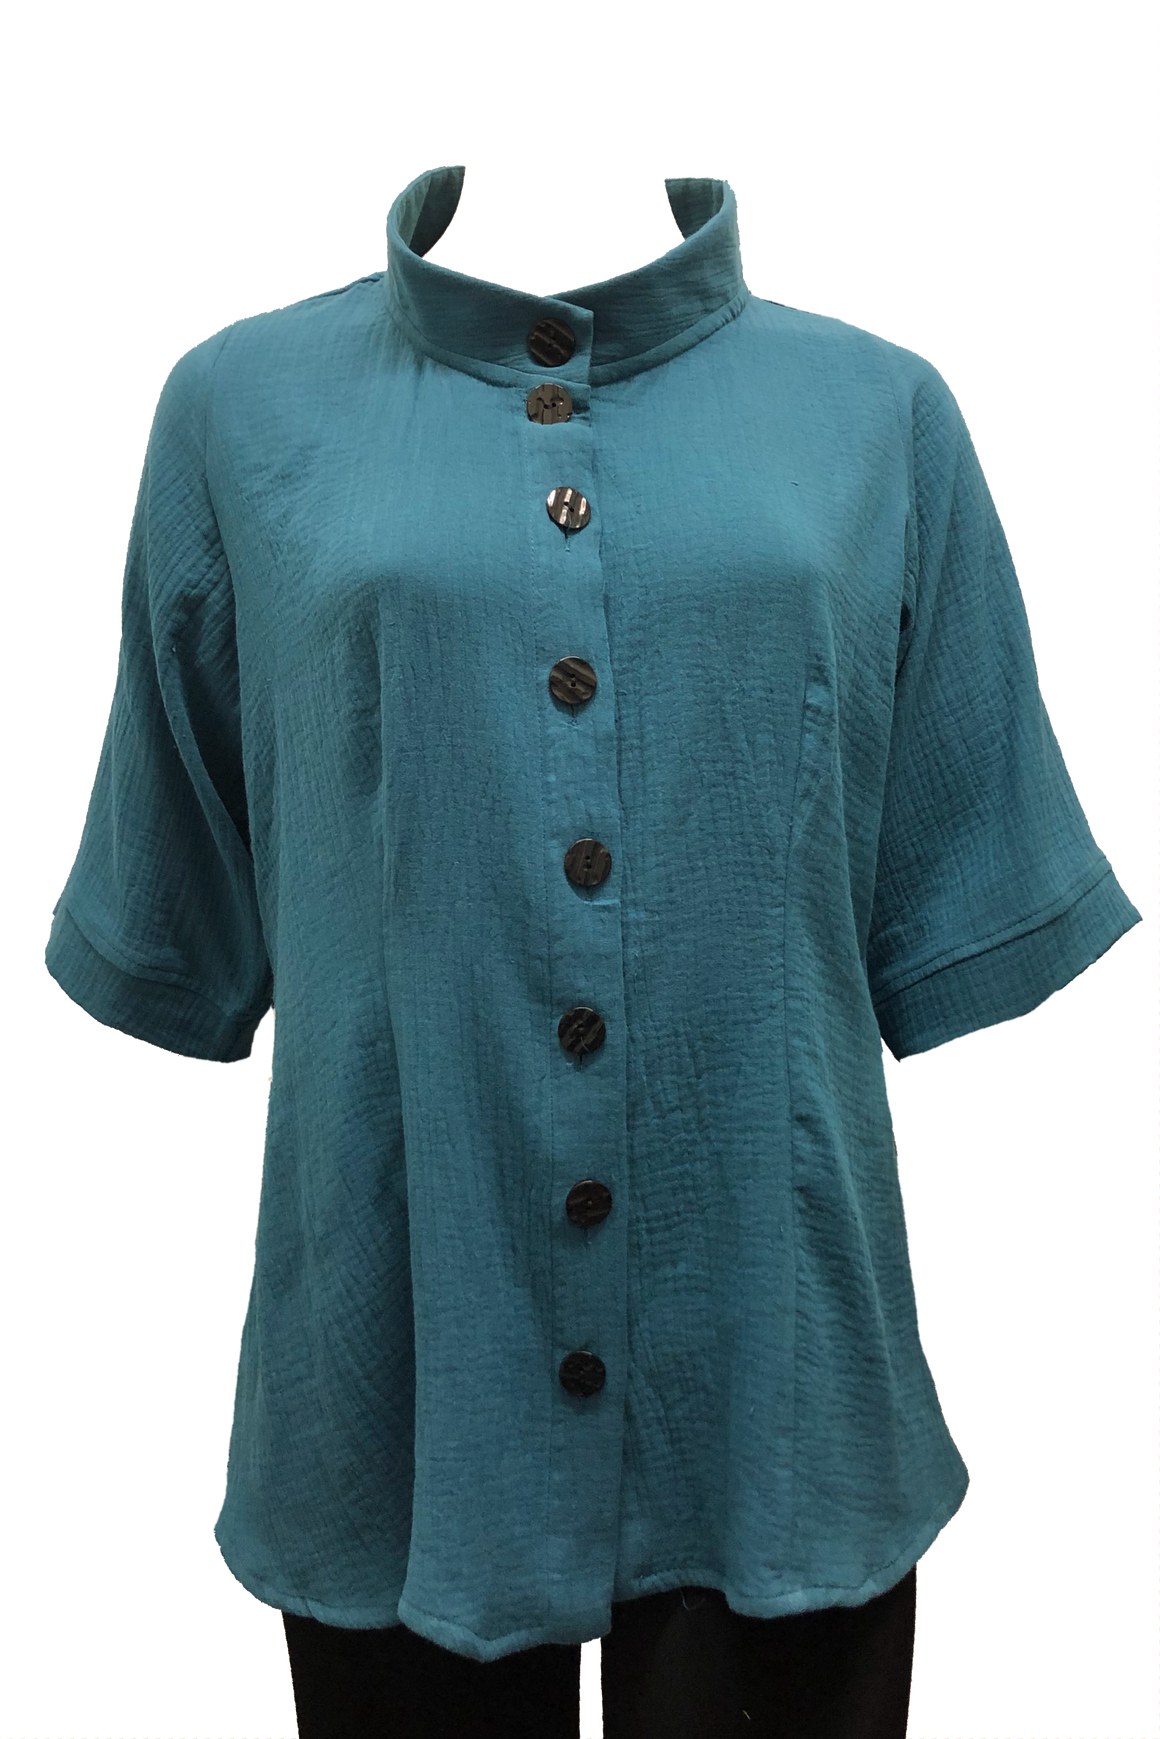 Rodin Shirt: Teal Cotton